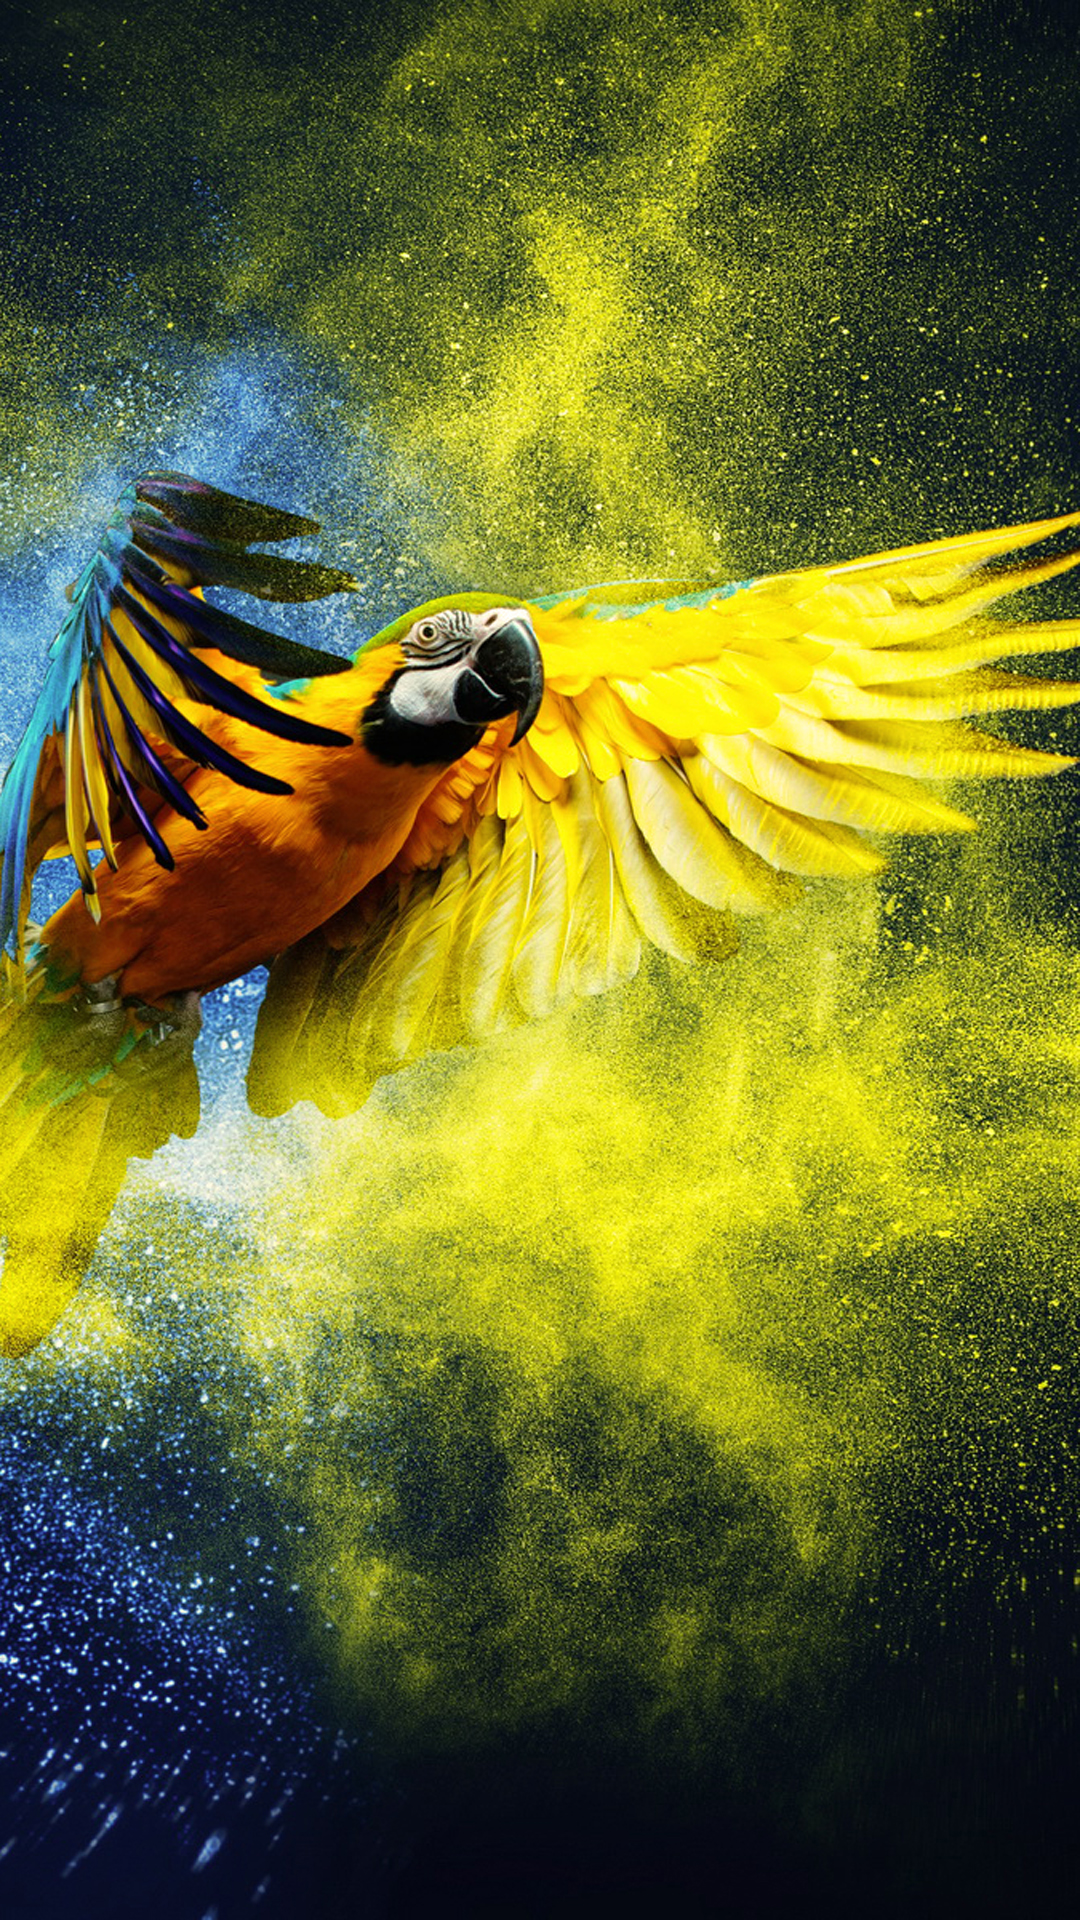 iPhone wallpaper parrot yellow 3Wallpapers : notre sélection de fonds d'écran du 01/03/2018